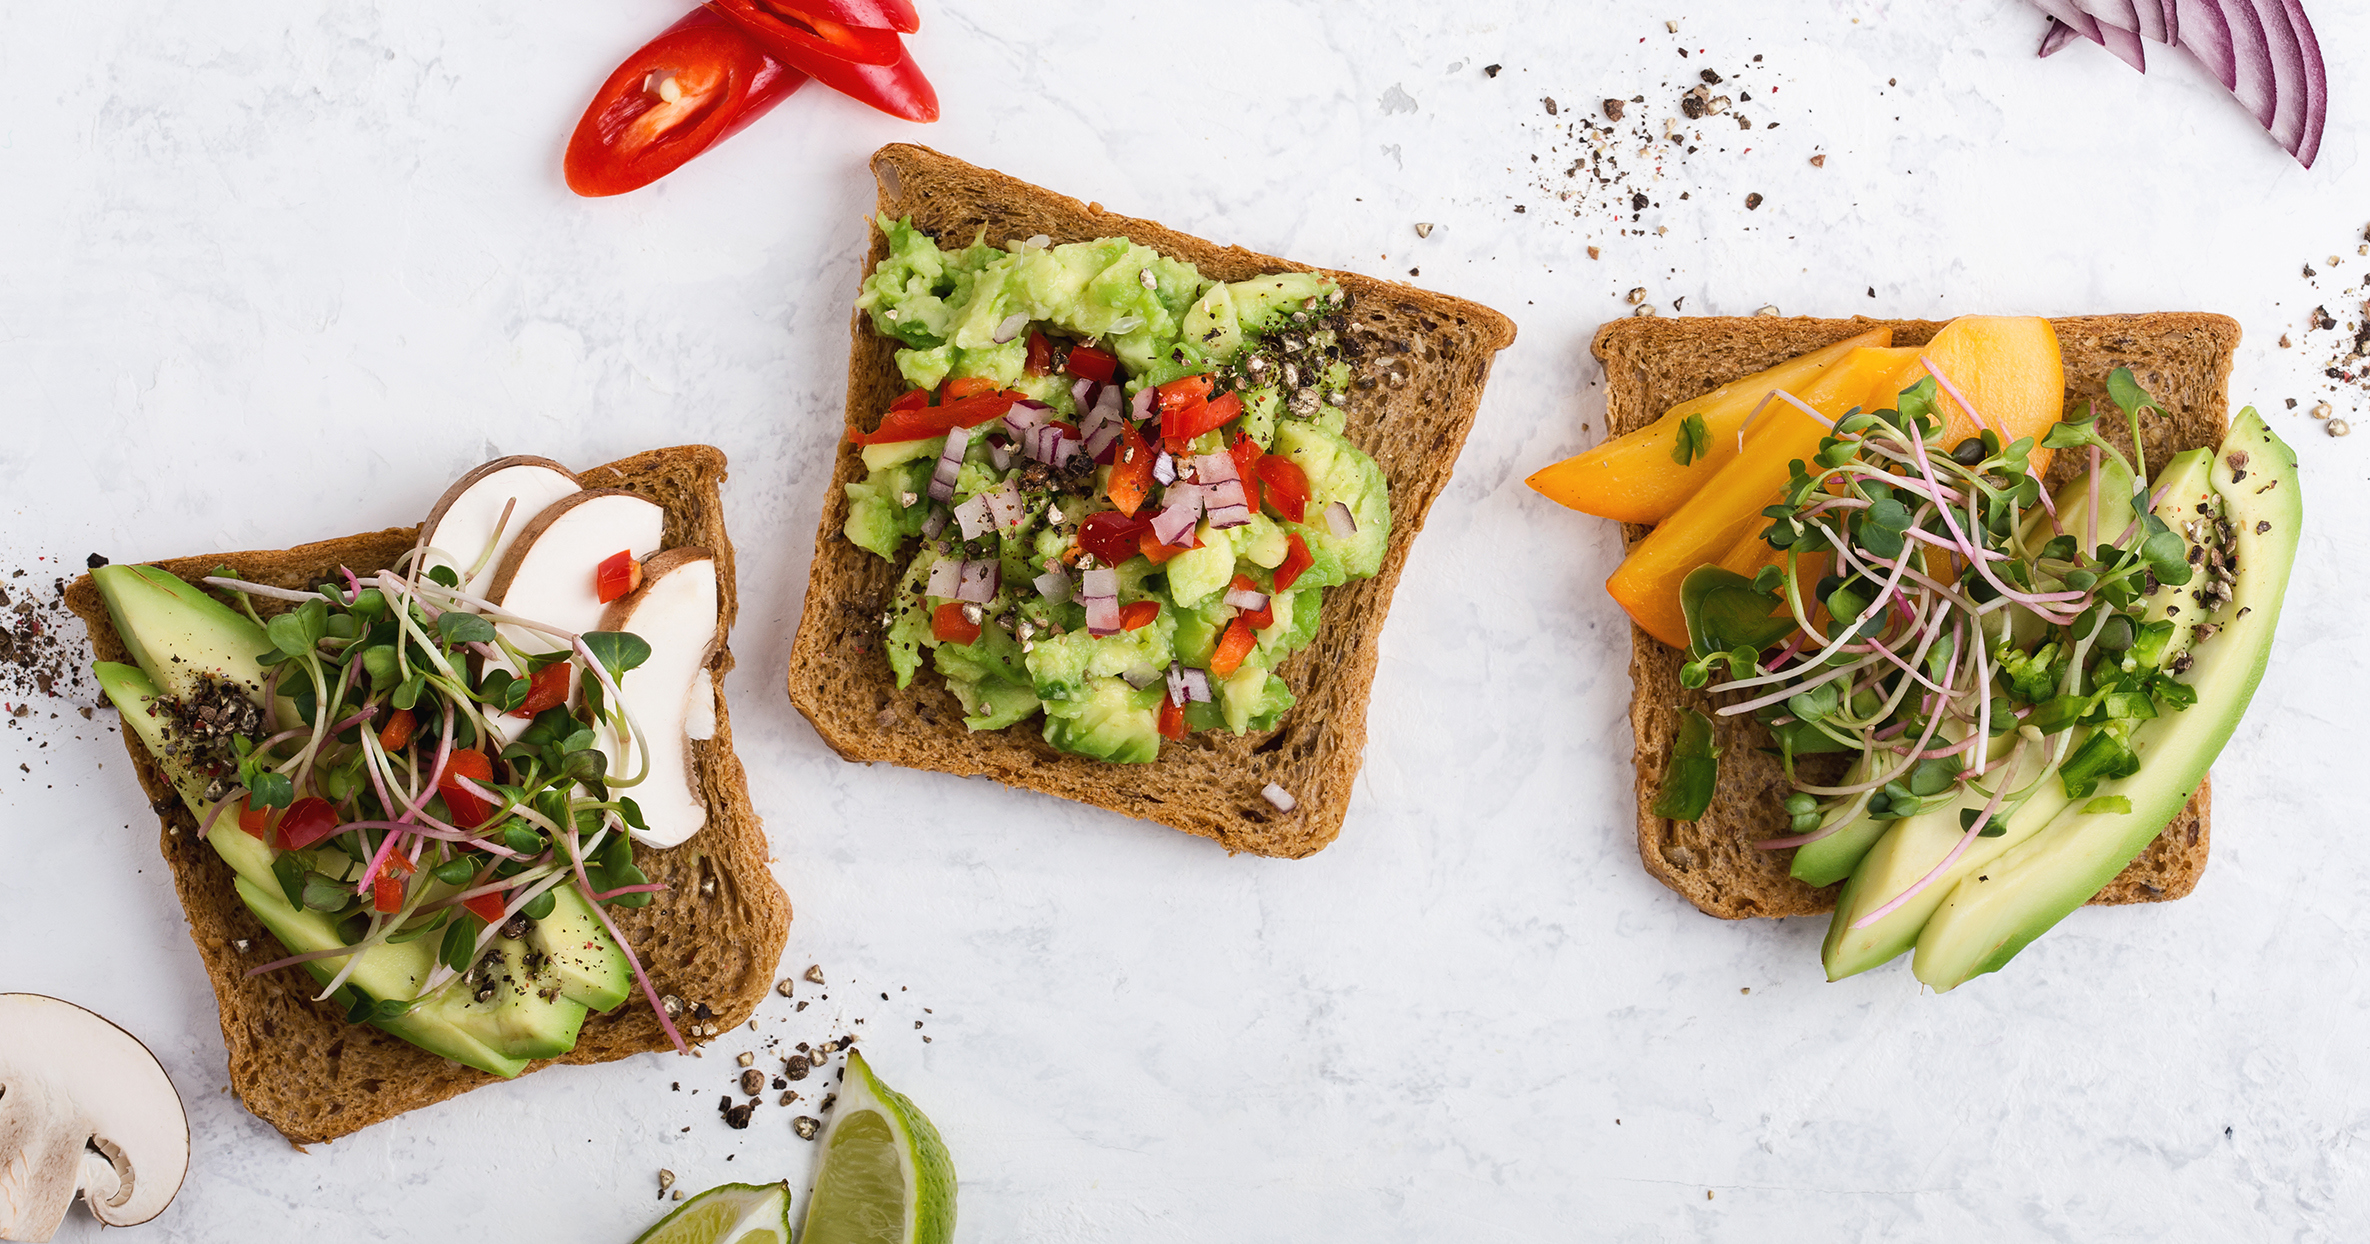 Variety of avocado toasts with fresh radish cress, mushrooms and persimmon. Plant based colorful vegan snack on gray background viewed from above